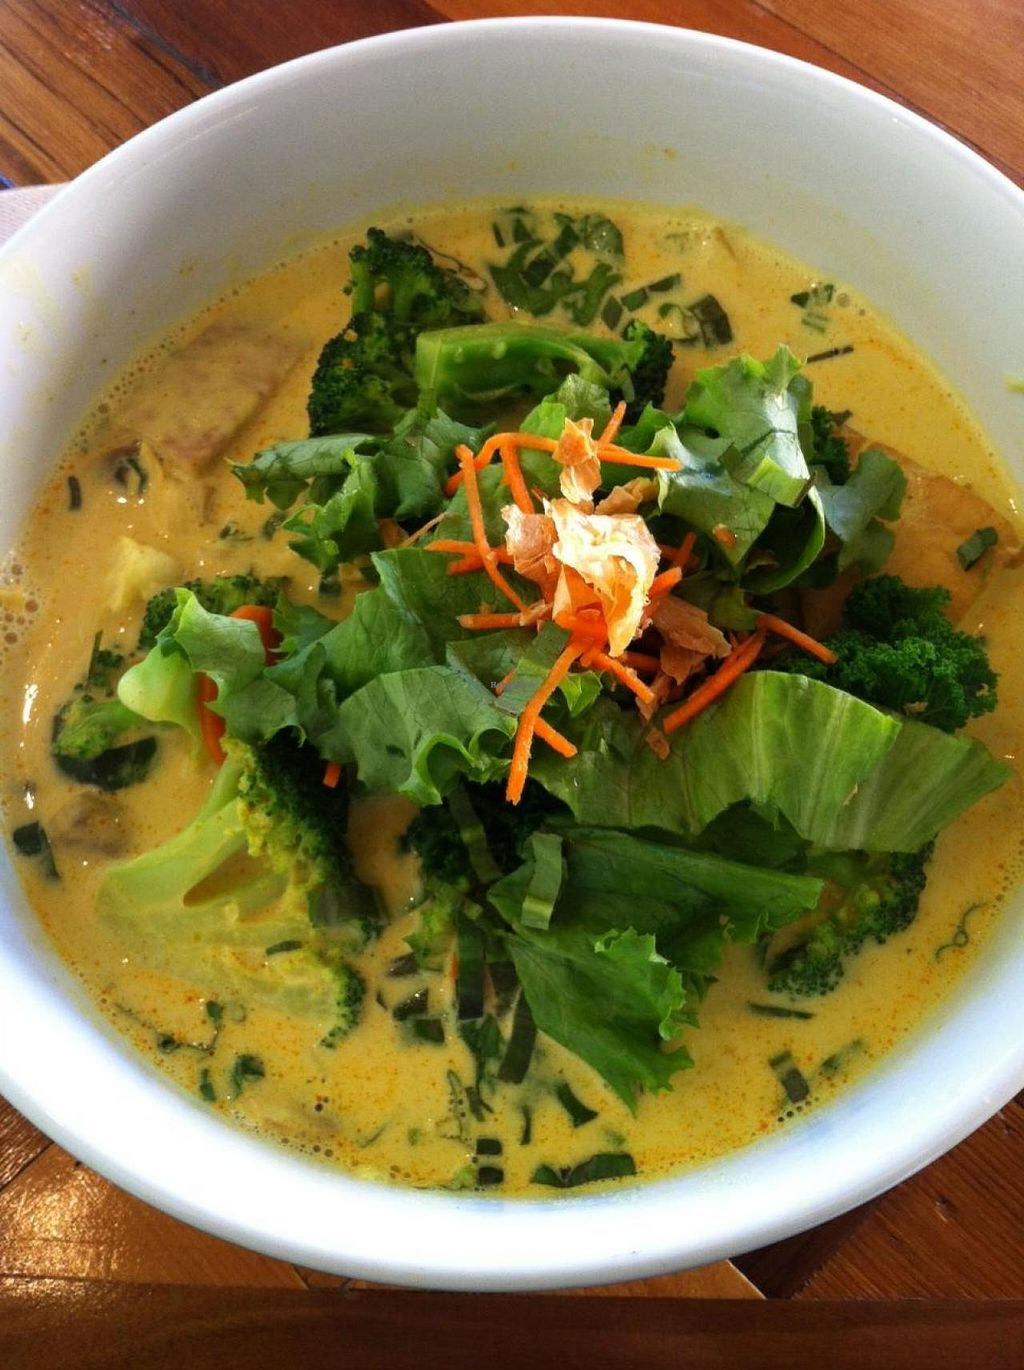 "Photo of Chau VeggiExpress  by <a href=""/members/profile/vegan%20frog"">vegan frog</a> <br/>Coconut curry pho <br/> November 29, 2014  - <a href='/contact/abuse/image/26705/86745'>Report</a>"